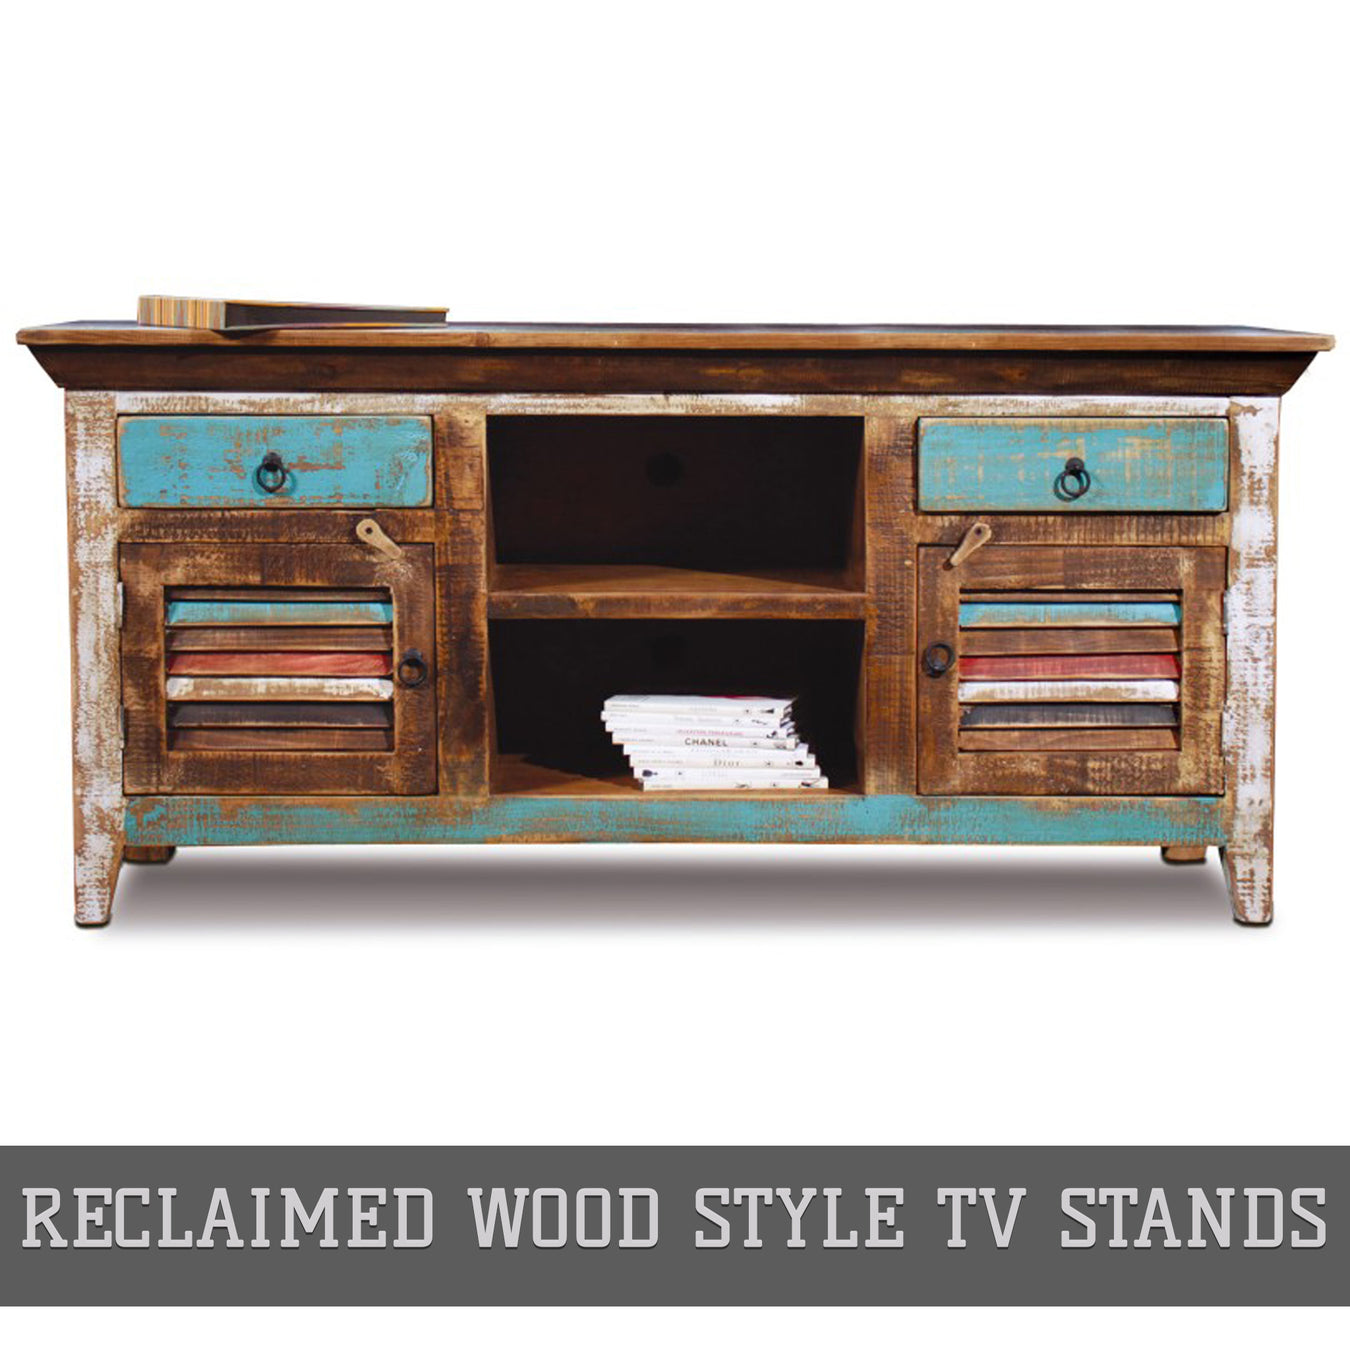 Reclaimed Wood Style TV Stands